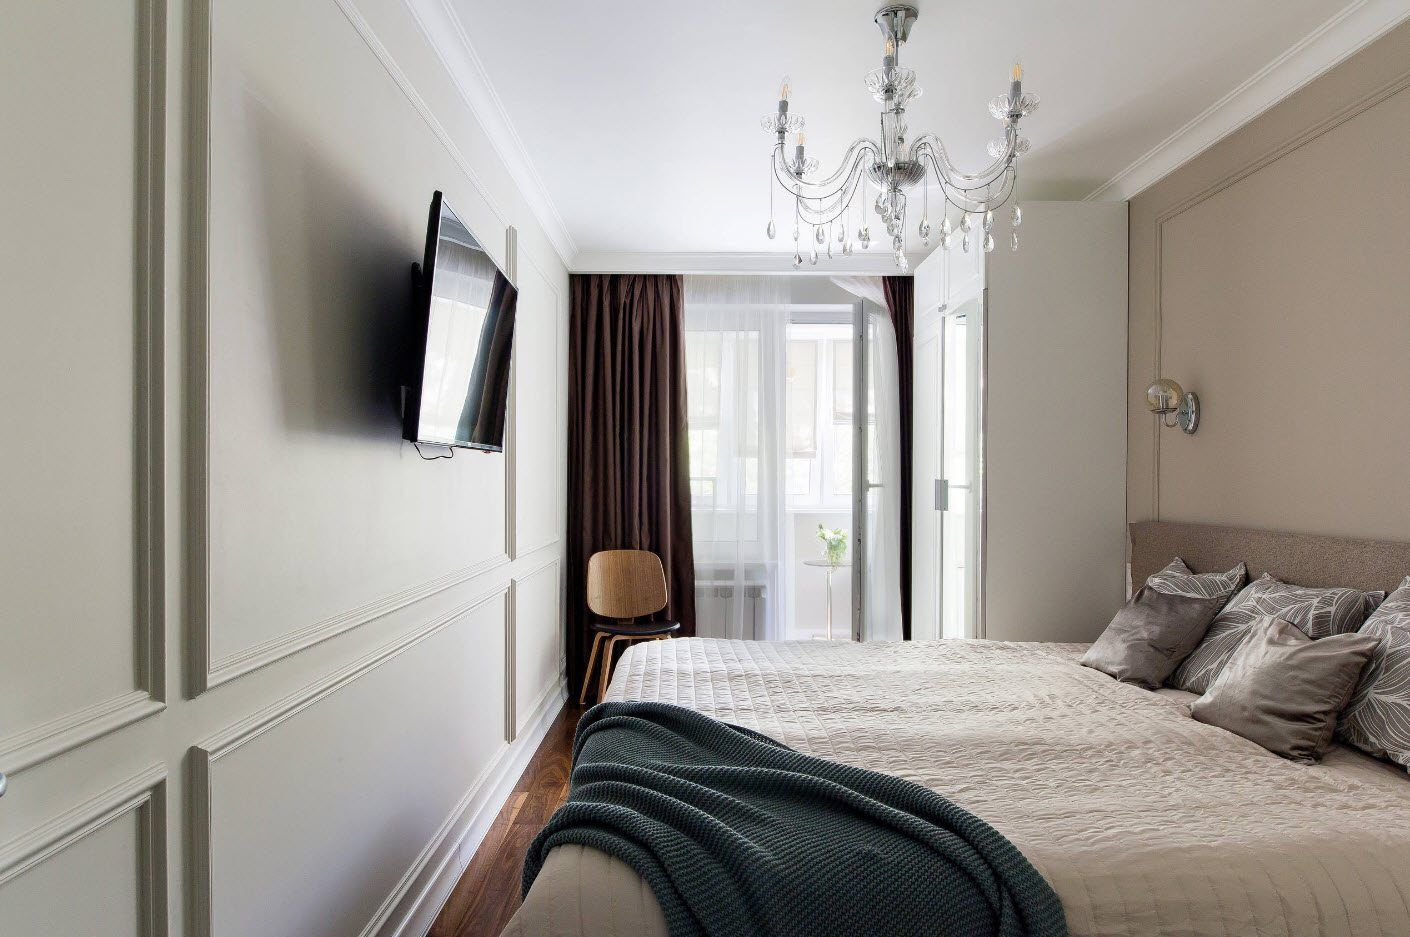 Classic design of the small bedroom with TV and dark curtains